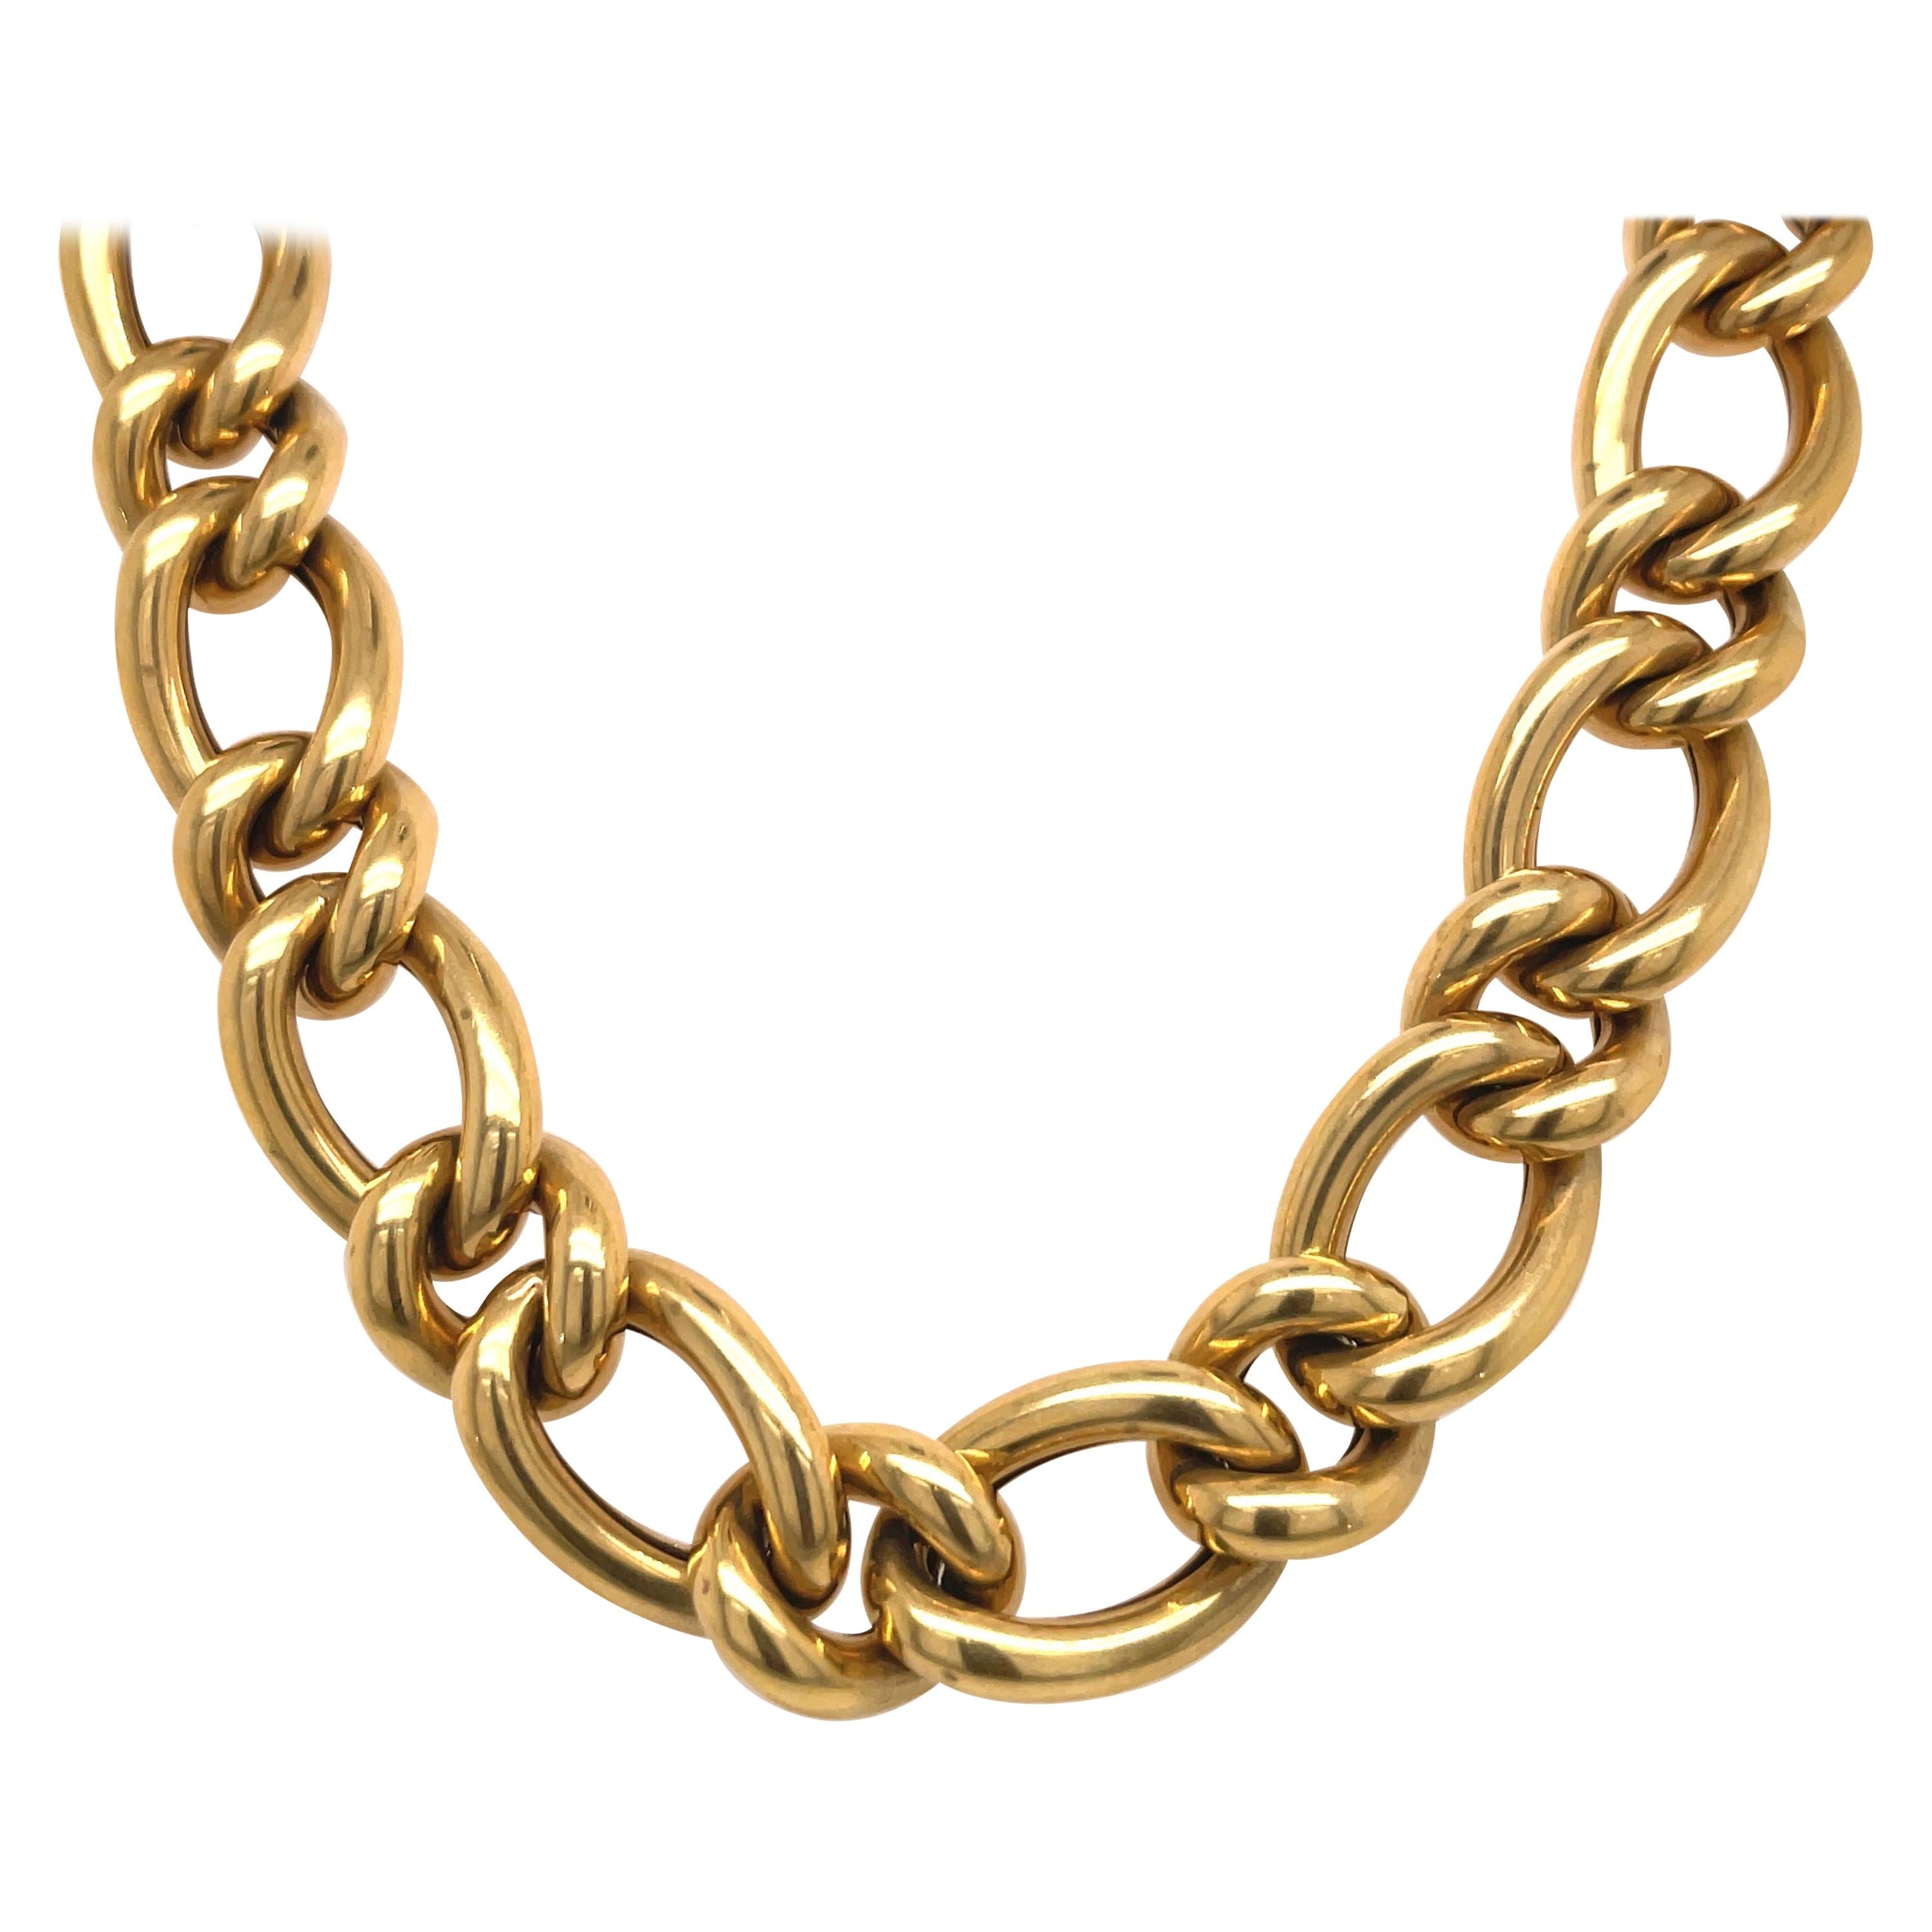 18 Karat Yellow Gold Link Necklace 63.8 Grams Made in Italy